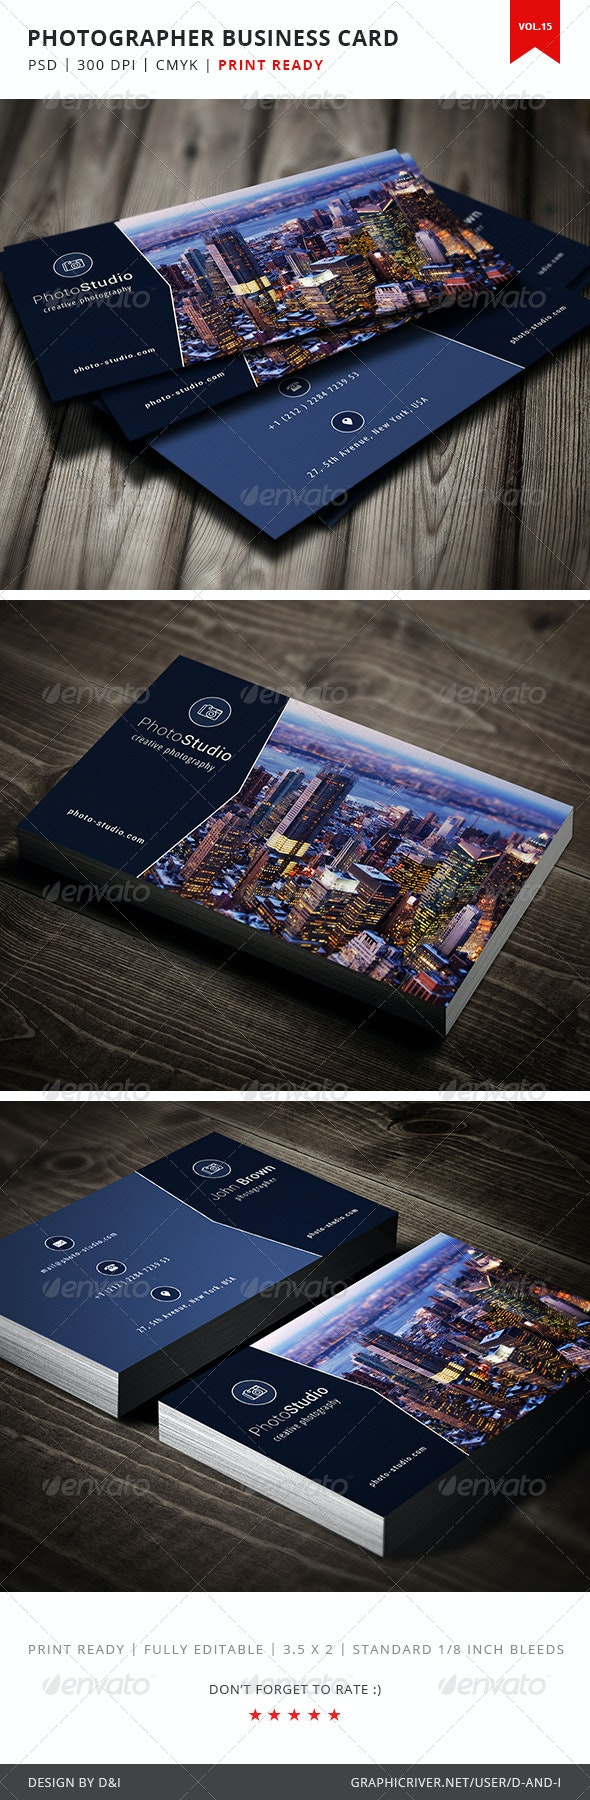 Photographer Business Card - Vol.15 - Industry Specific Business Cards